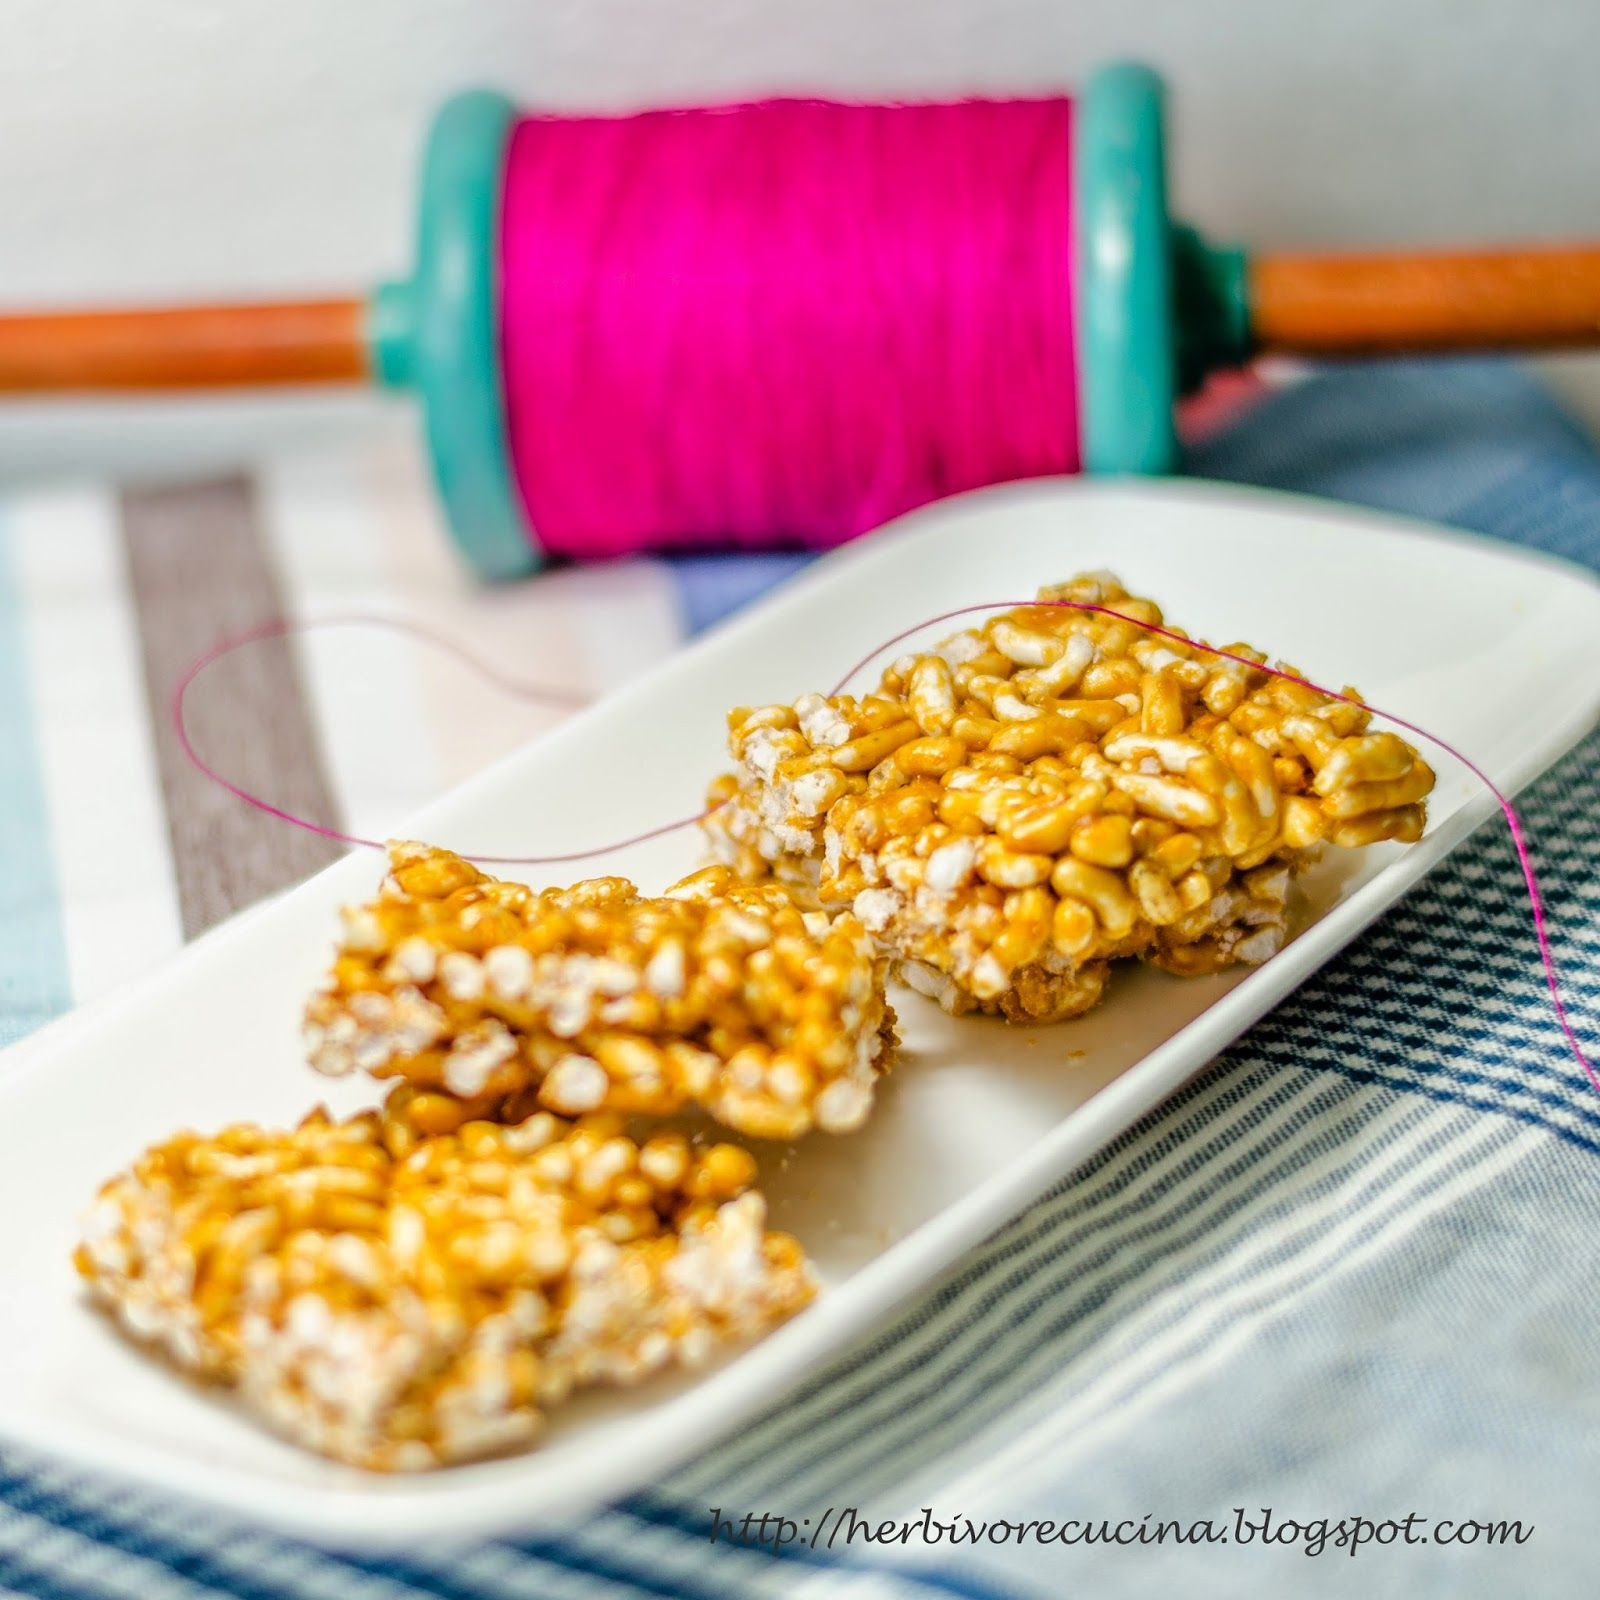 Kite flying in Sankrant is enjoyed best with these Mamra Chikki | Puffed Rice Brittle